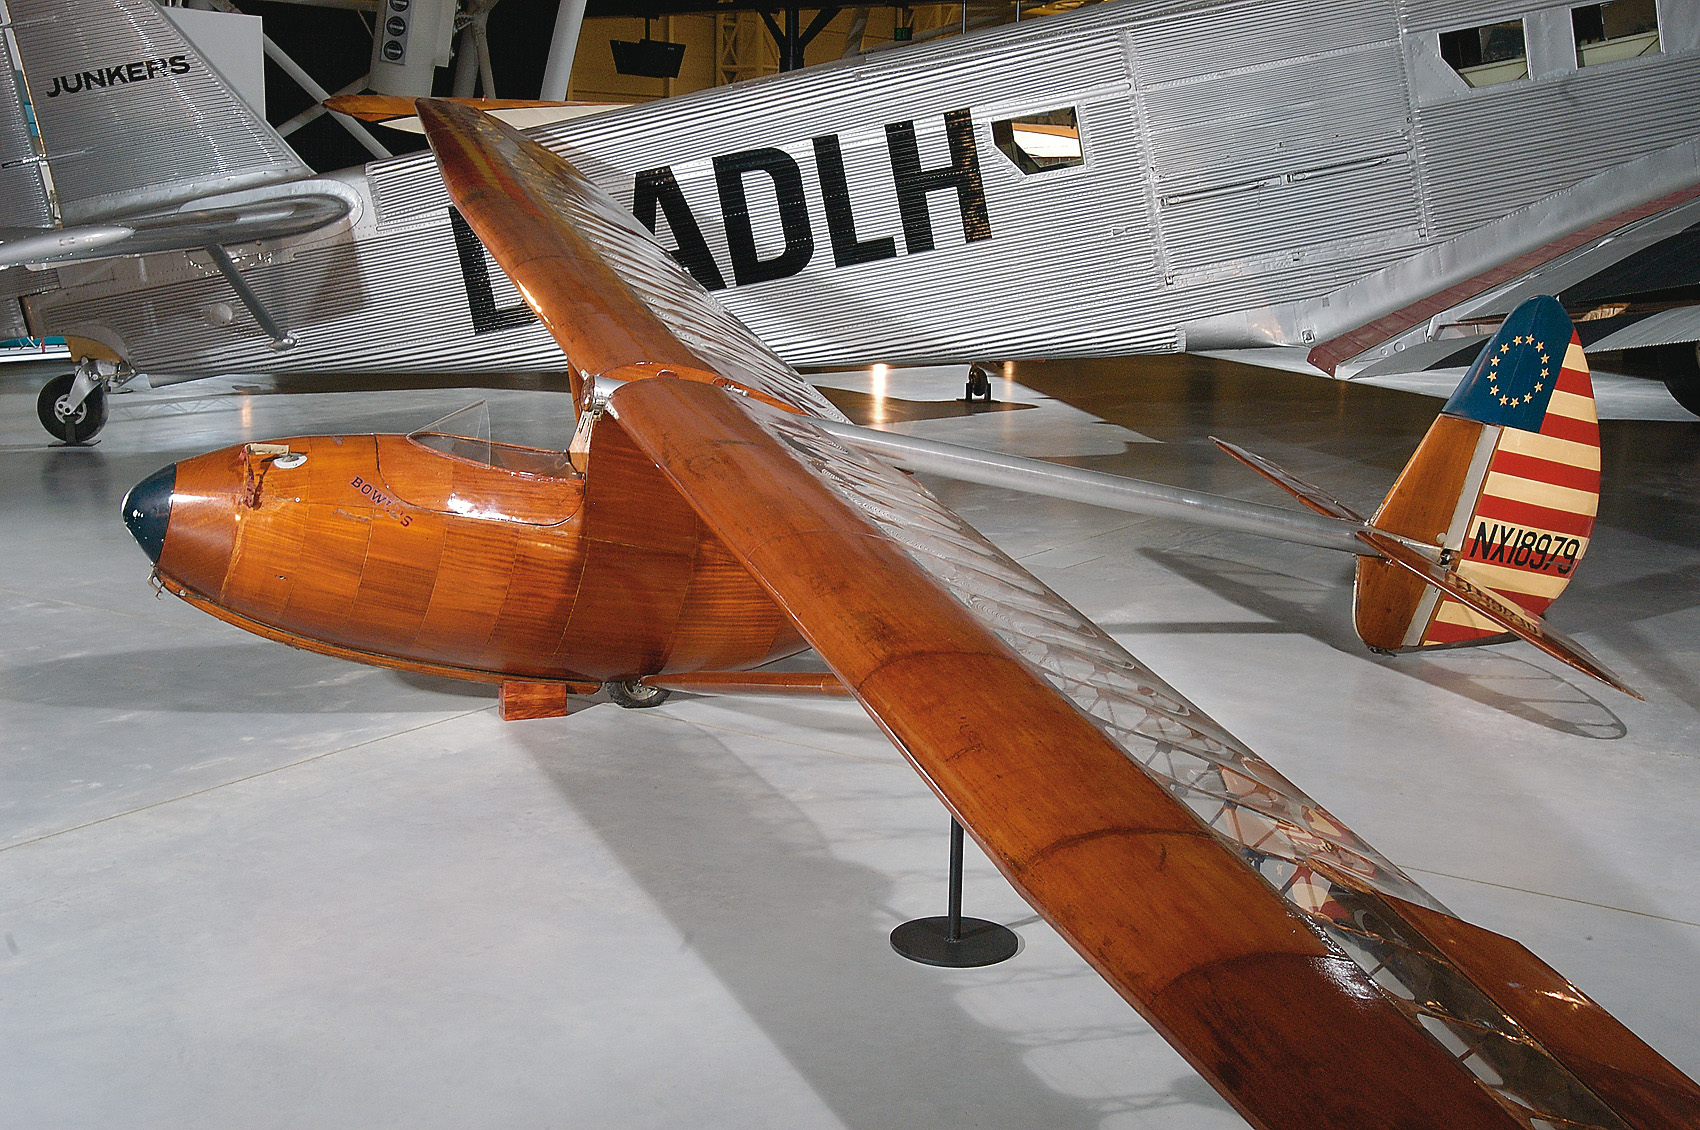 Bowlus BA-100 Baby Albatross at the Udvar-Hazy Center